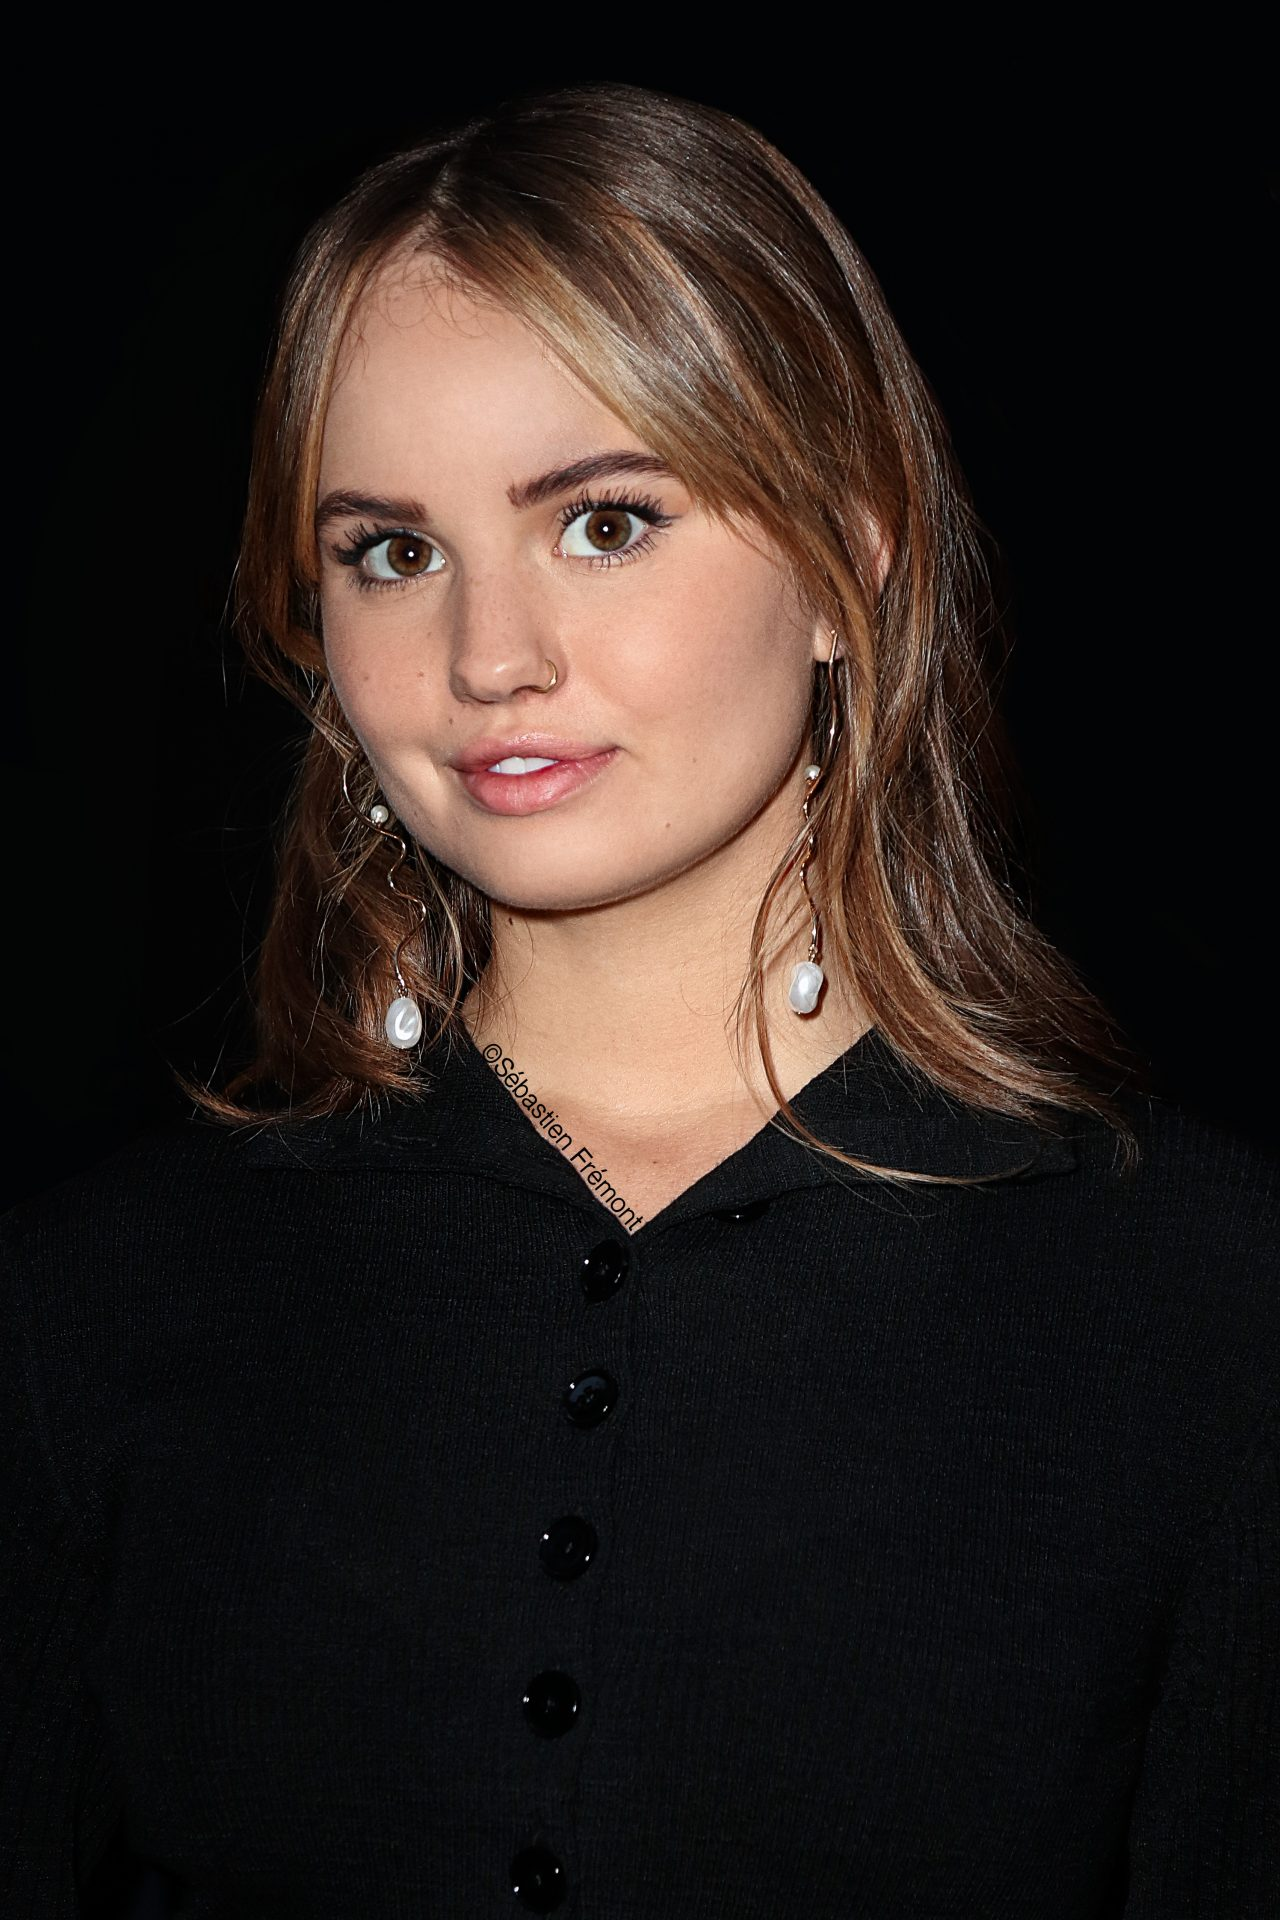 French Photographer Portrait Photography Debby Ryan / Christophe Lemaire